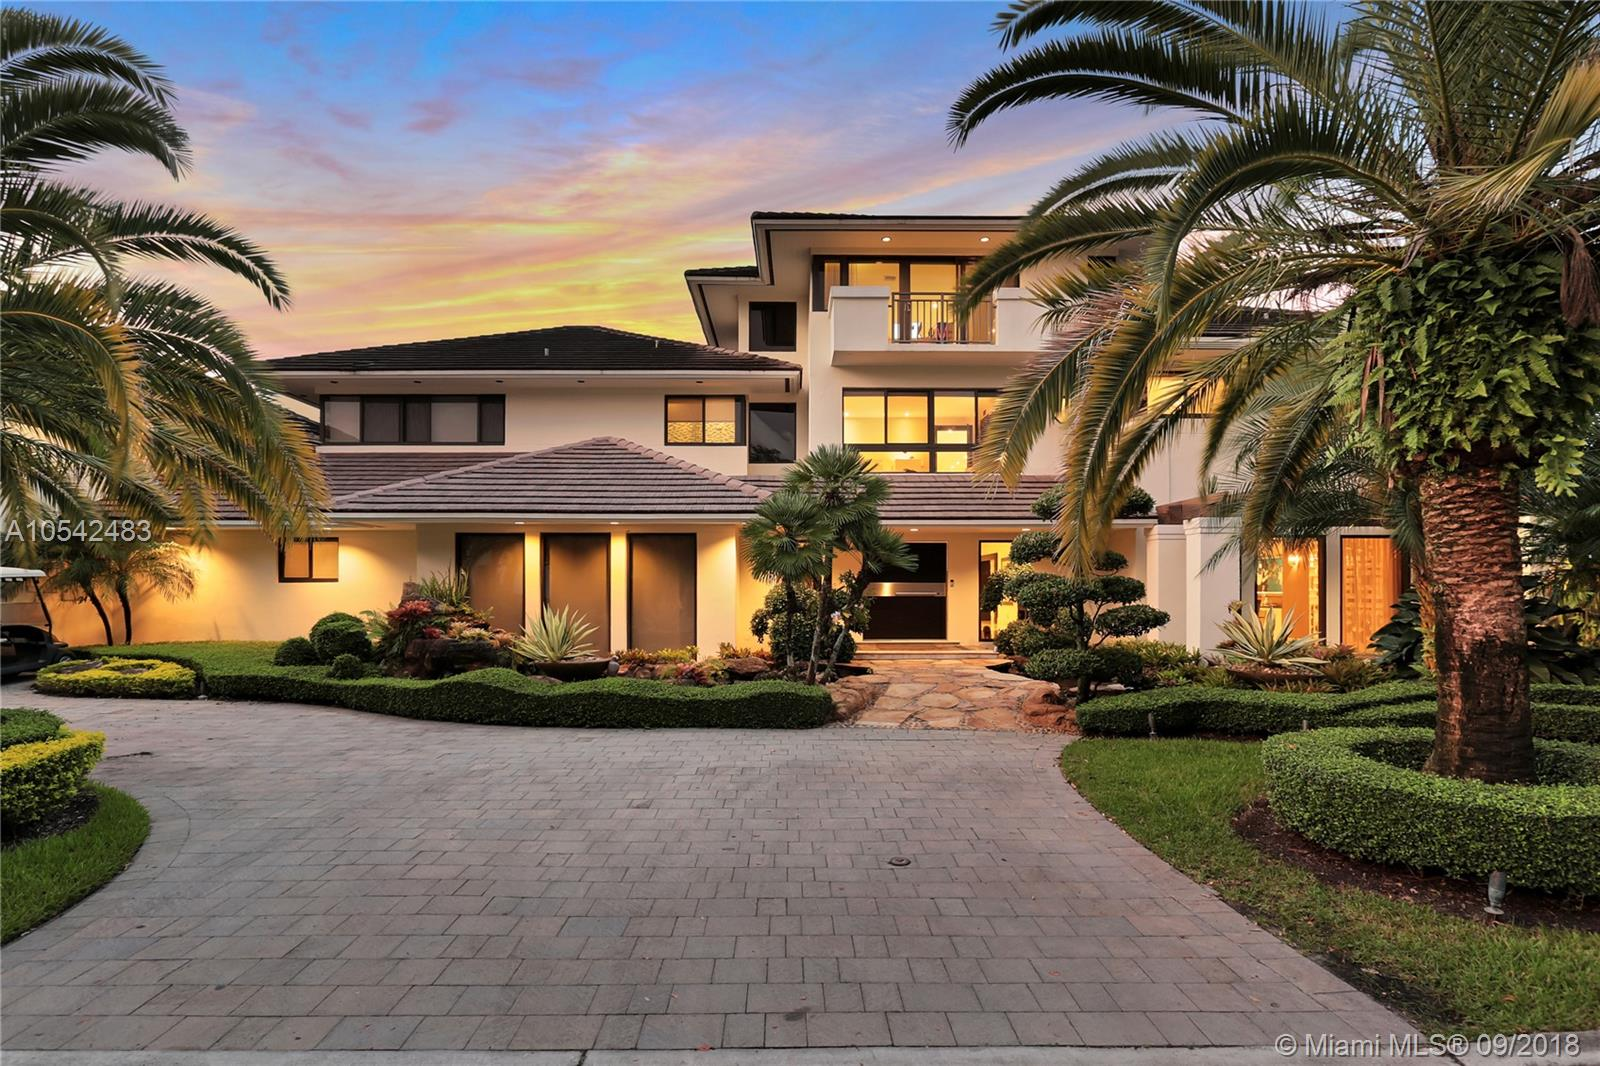 9464 NW 52nd Doral Ln  For Sale A10542483, FL